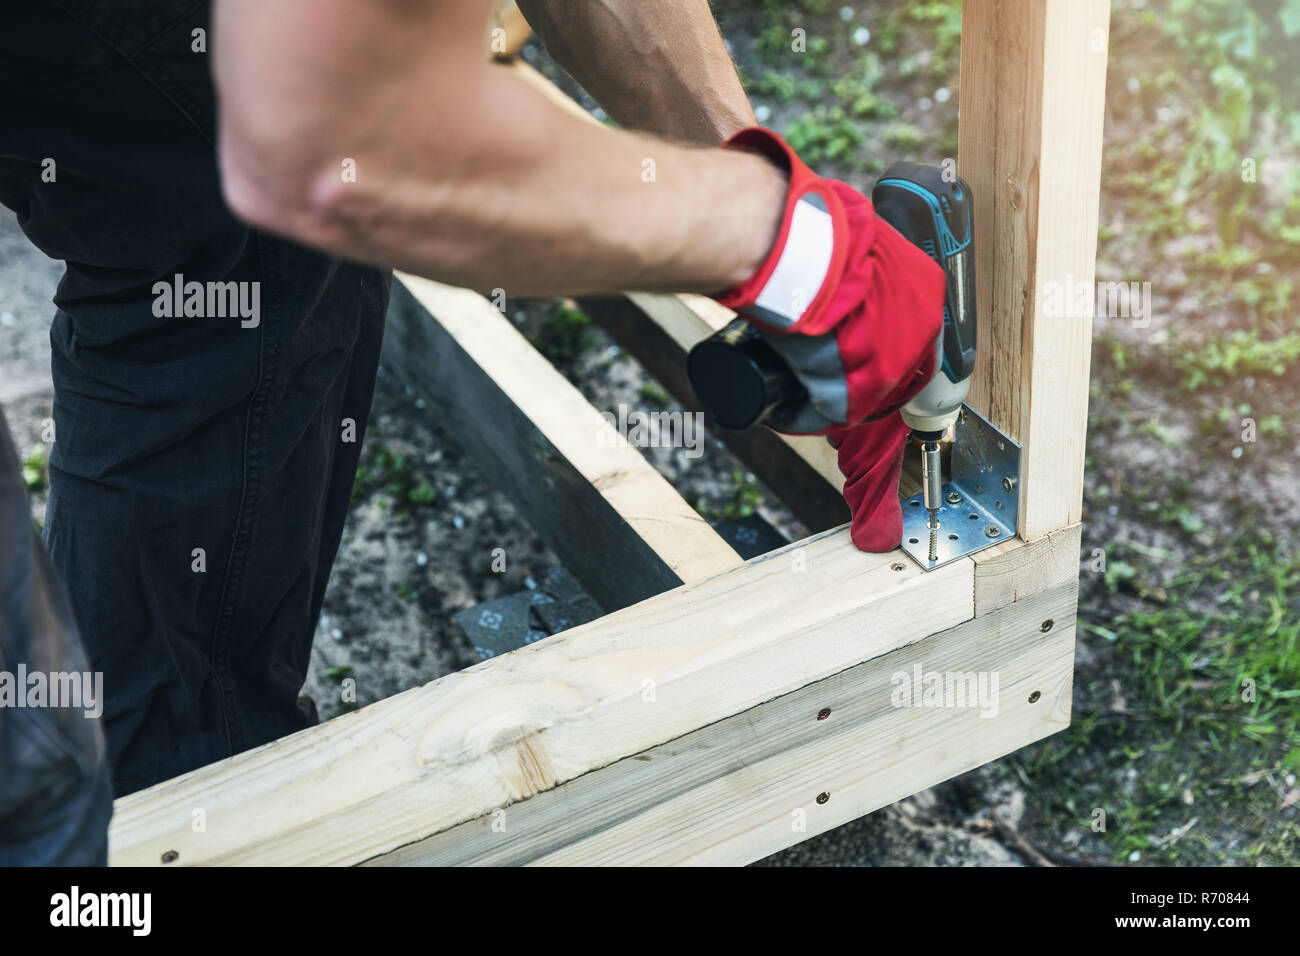 wood shed construction - man screwing corner joint brace - Stock Image